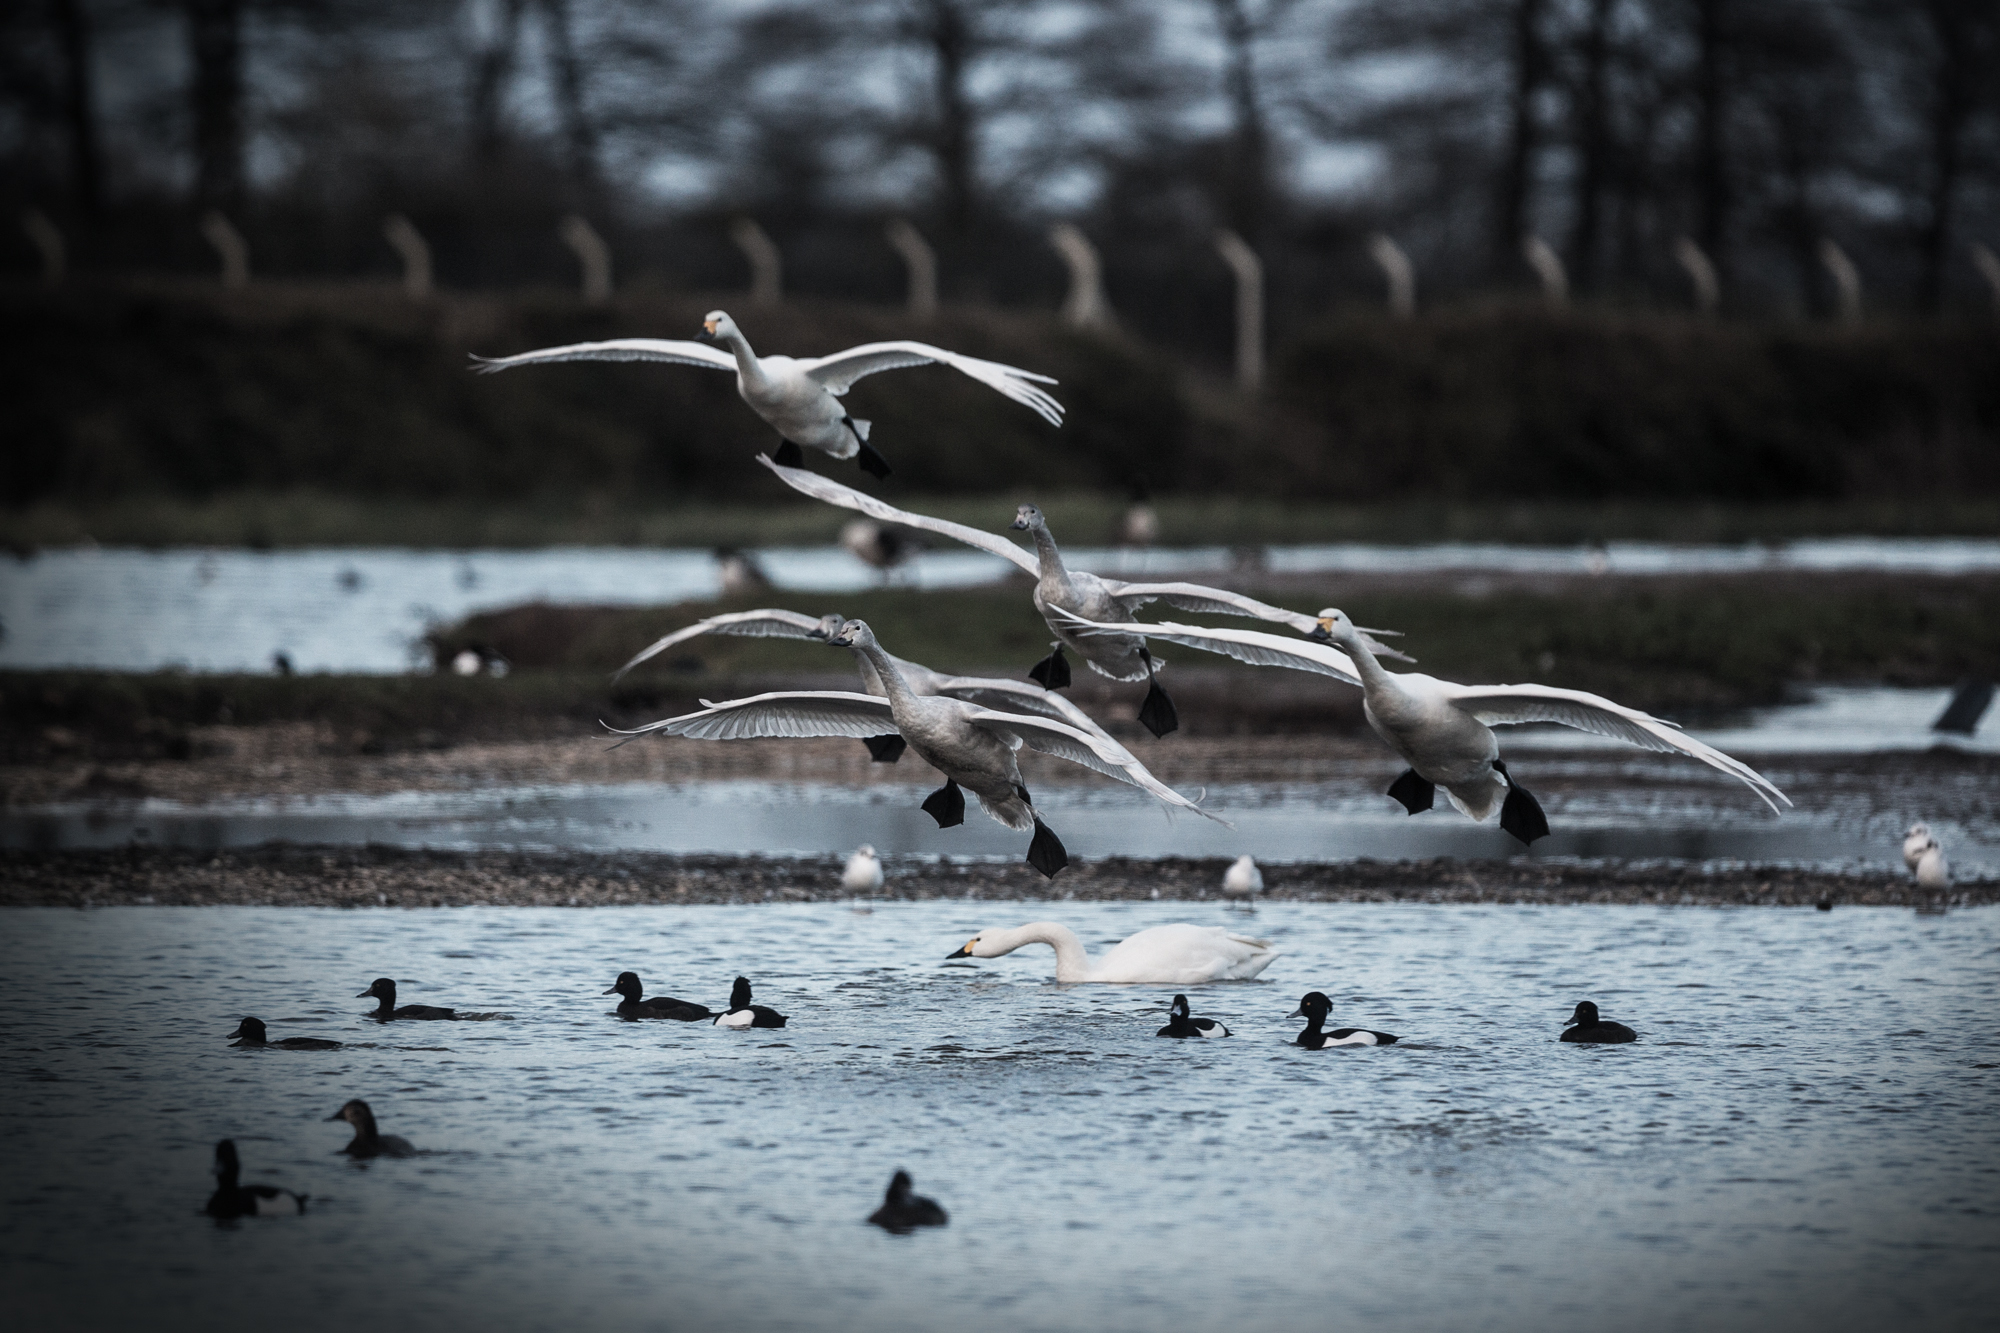 Swans flying over water on the Tack Piece at Slimbridge